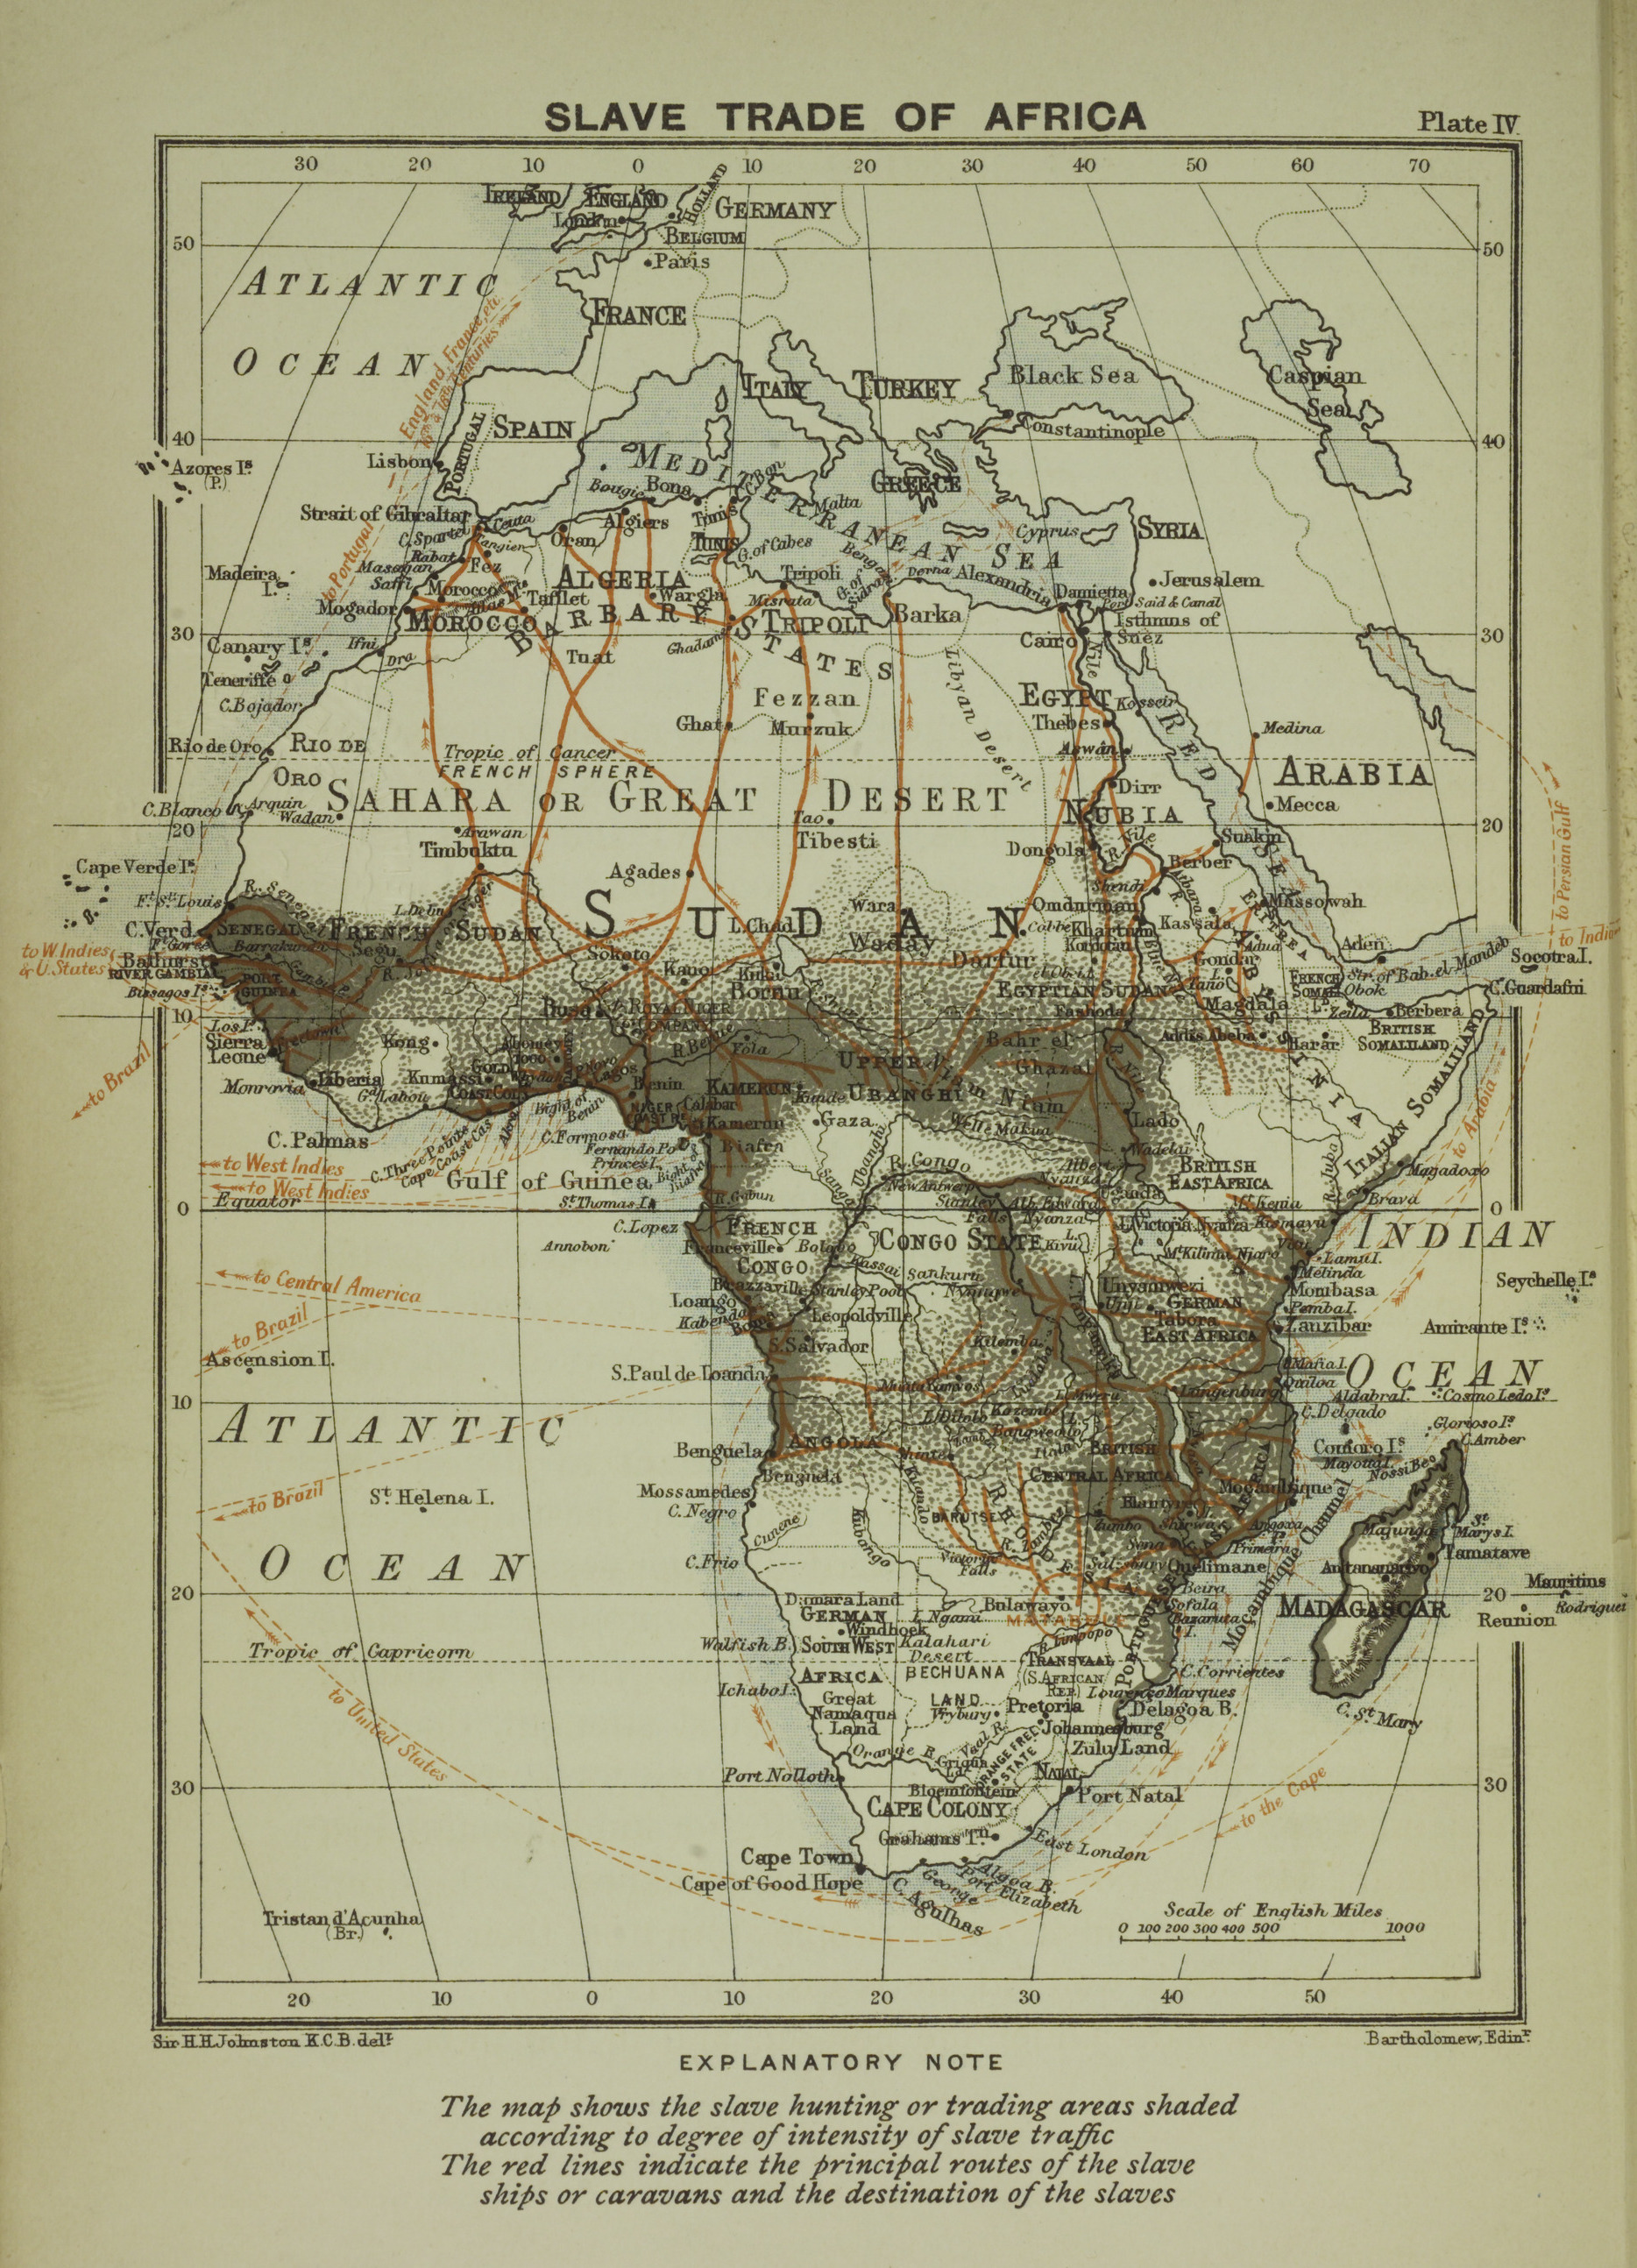 A Map Of The Slave Trade In Africa That Shows The Regions